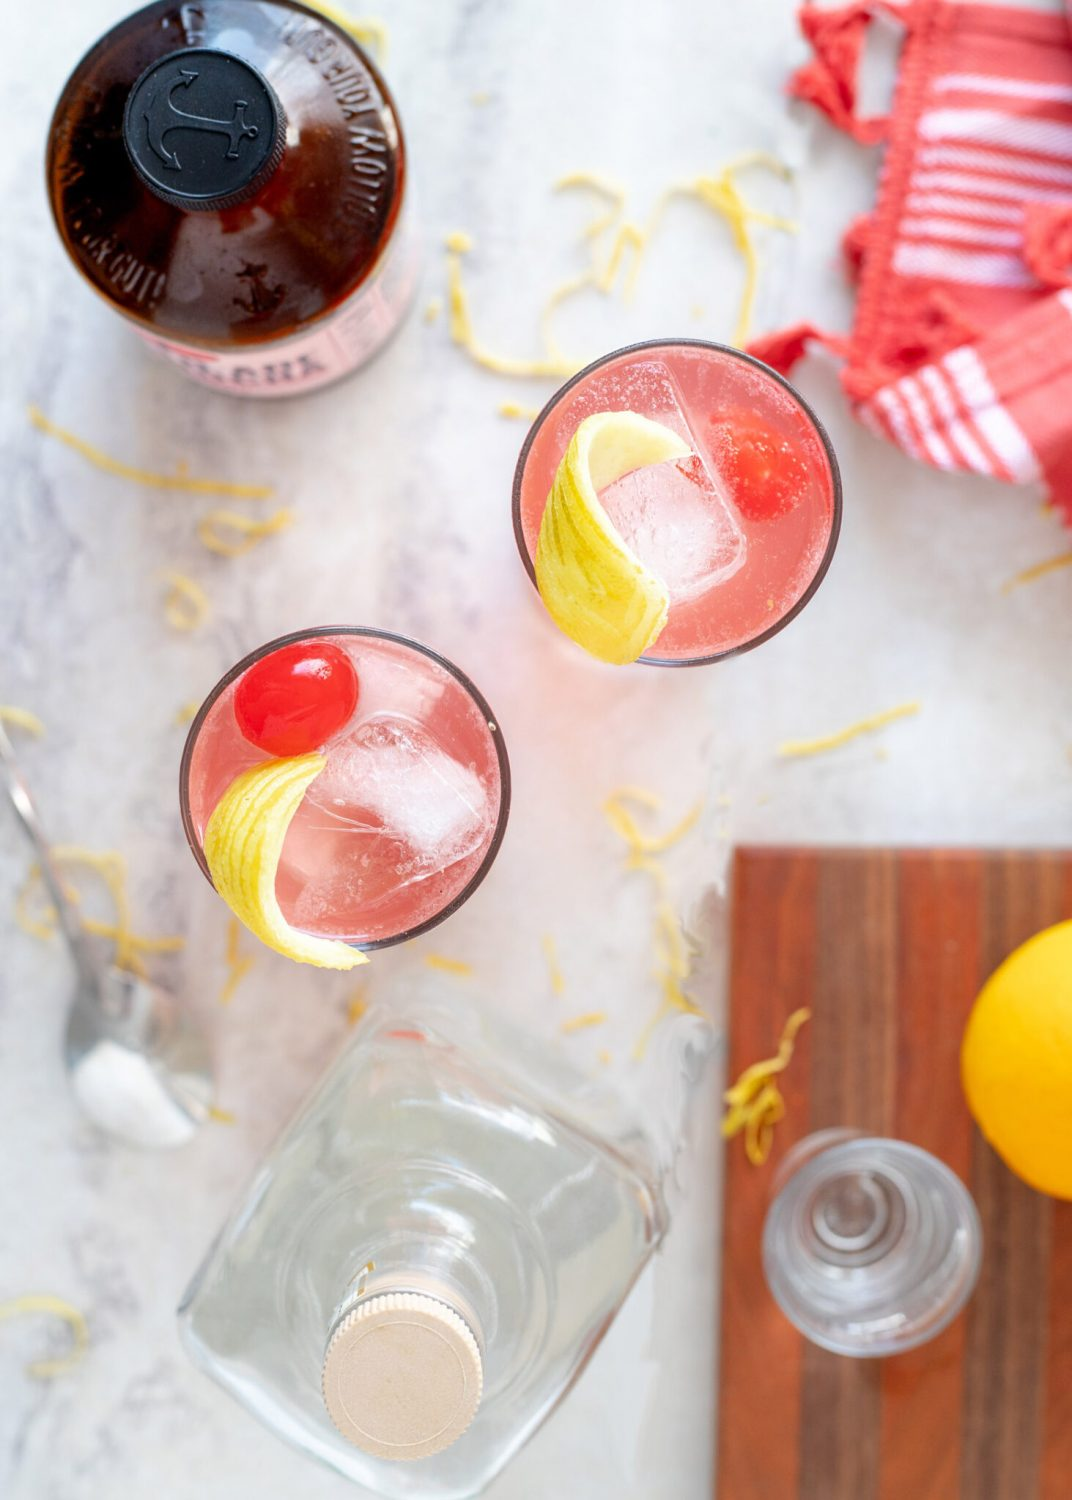 Classic gin fizz cocktail recipe turned kombucha cocktail. This pomegranate kombucha gin fizz is tart and filled with bubbles for a light and easy drinking cocktail. #Cocktail #Kombucha #Cocktailrecipe #Gin #ElleTalk